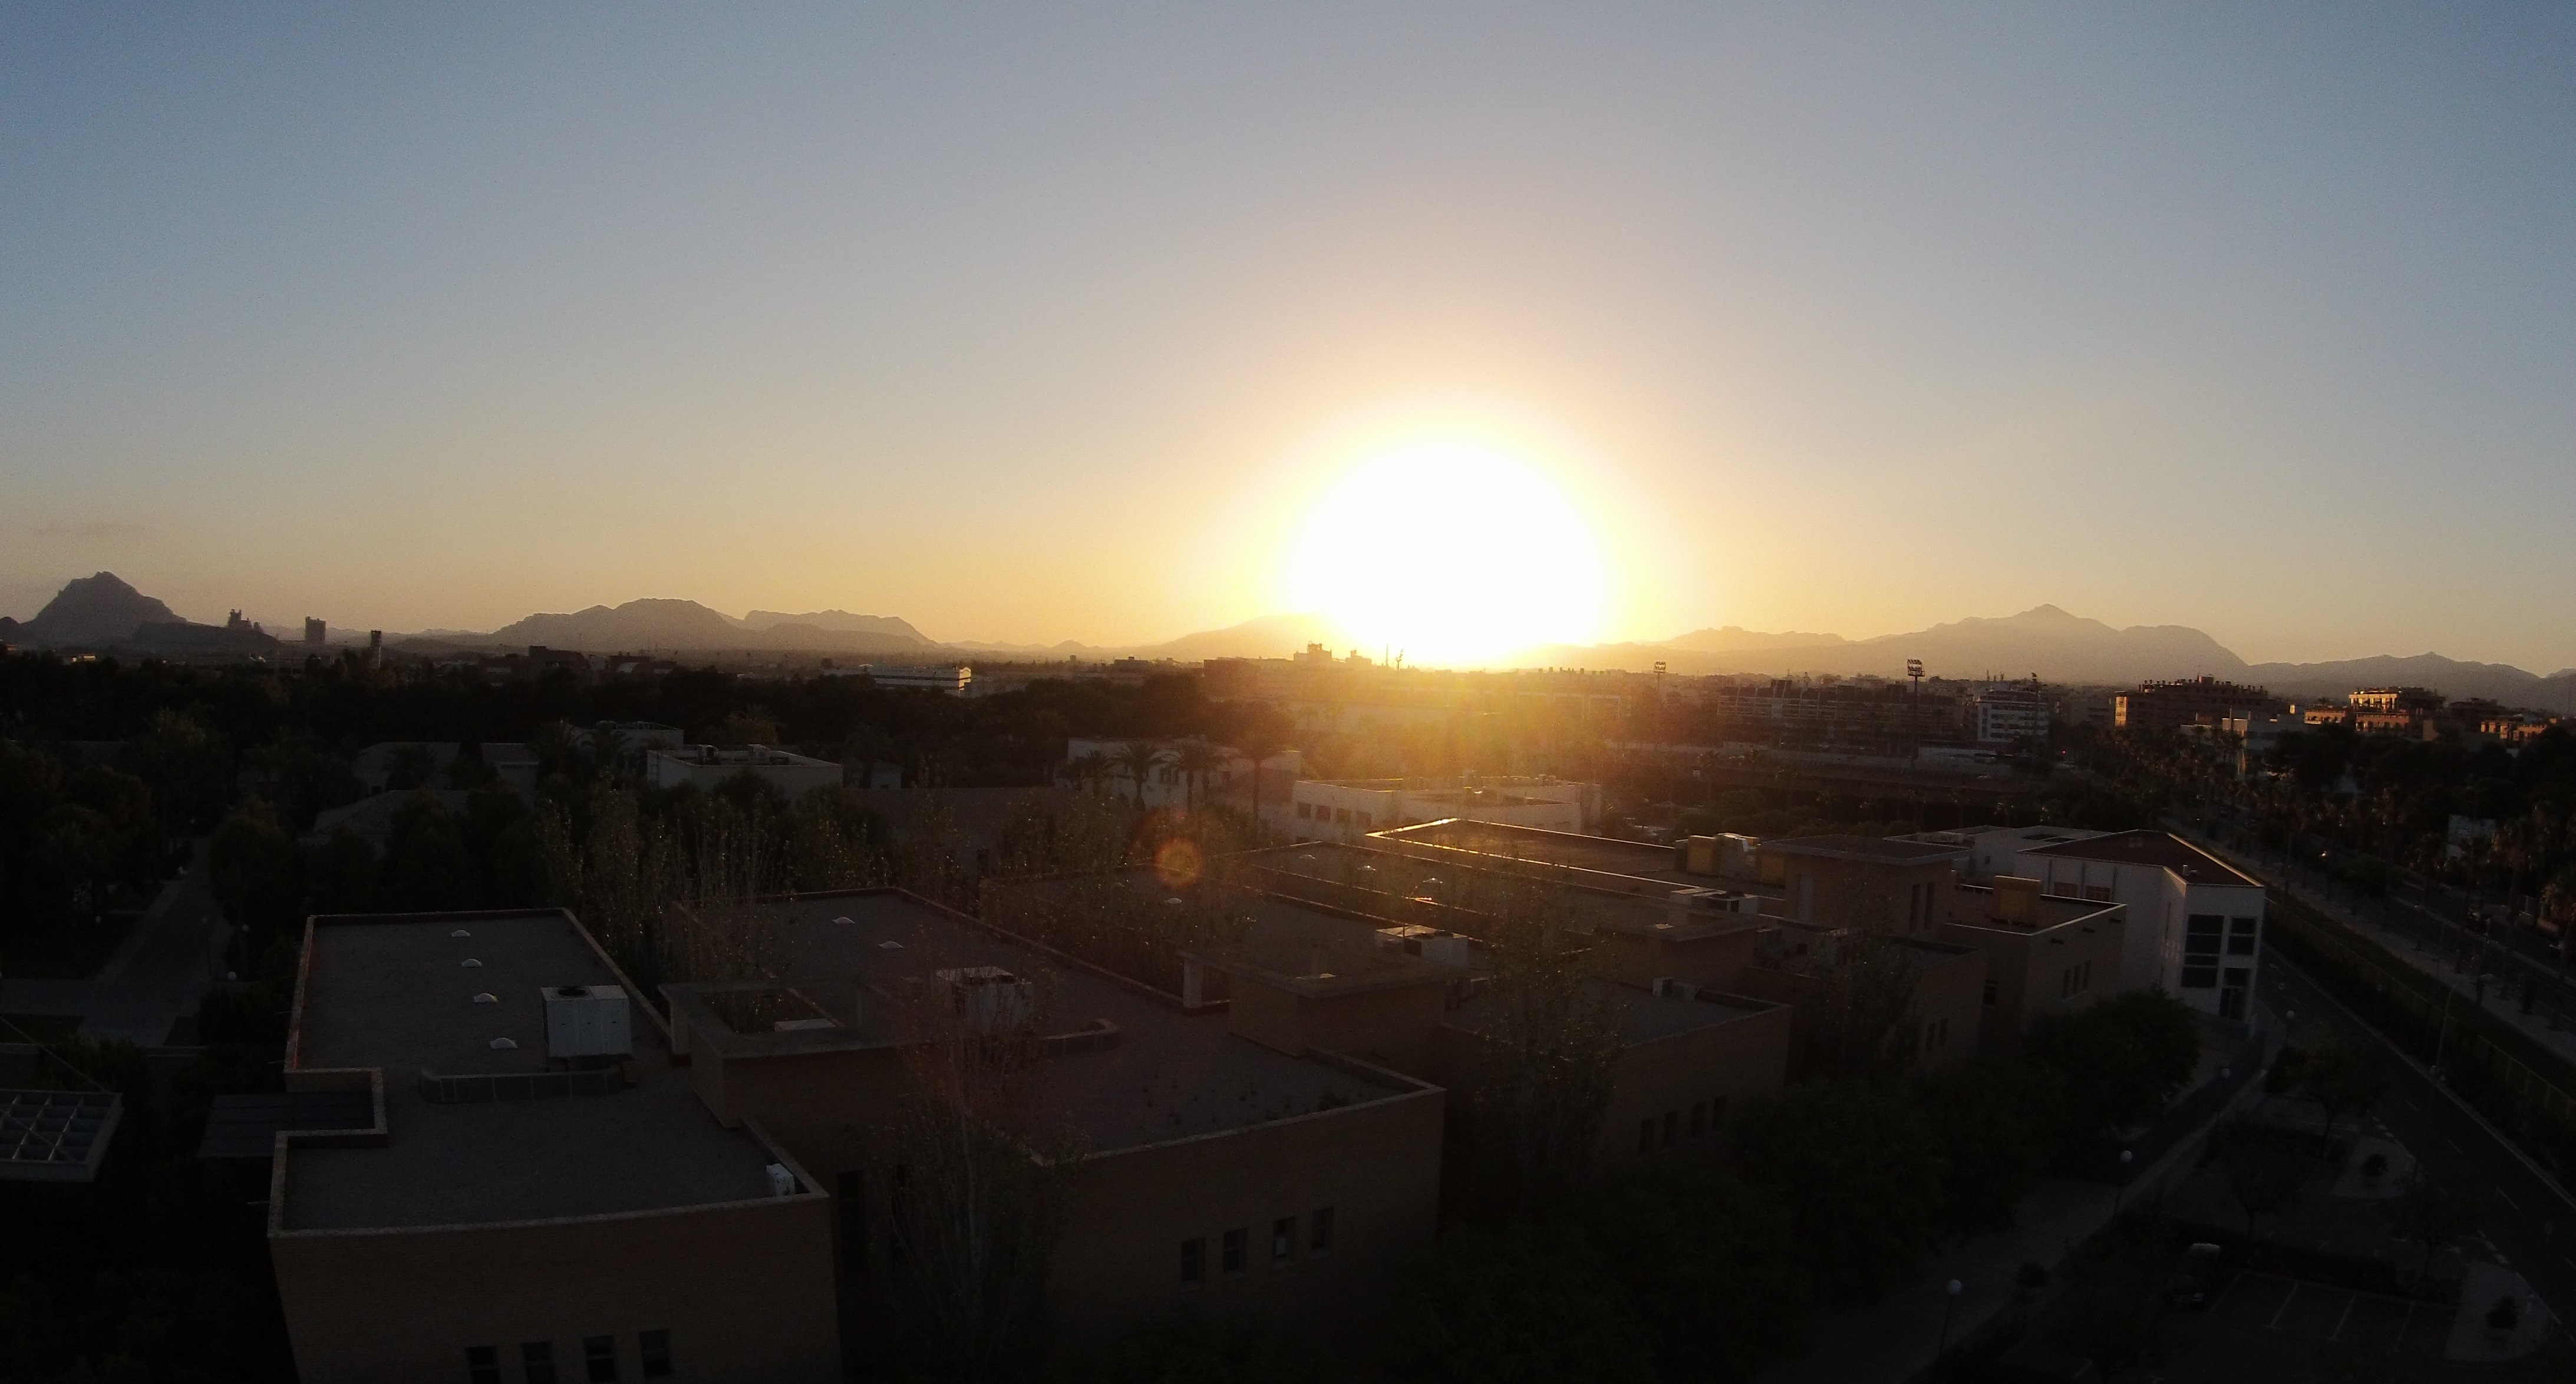 Sunset at University of Alicante, Spain